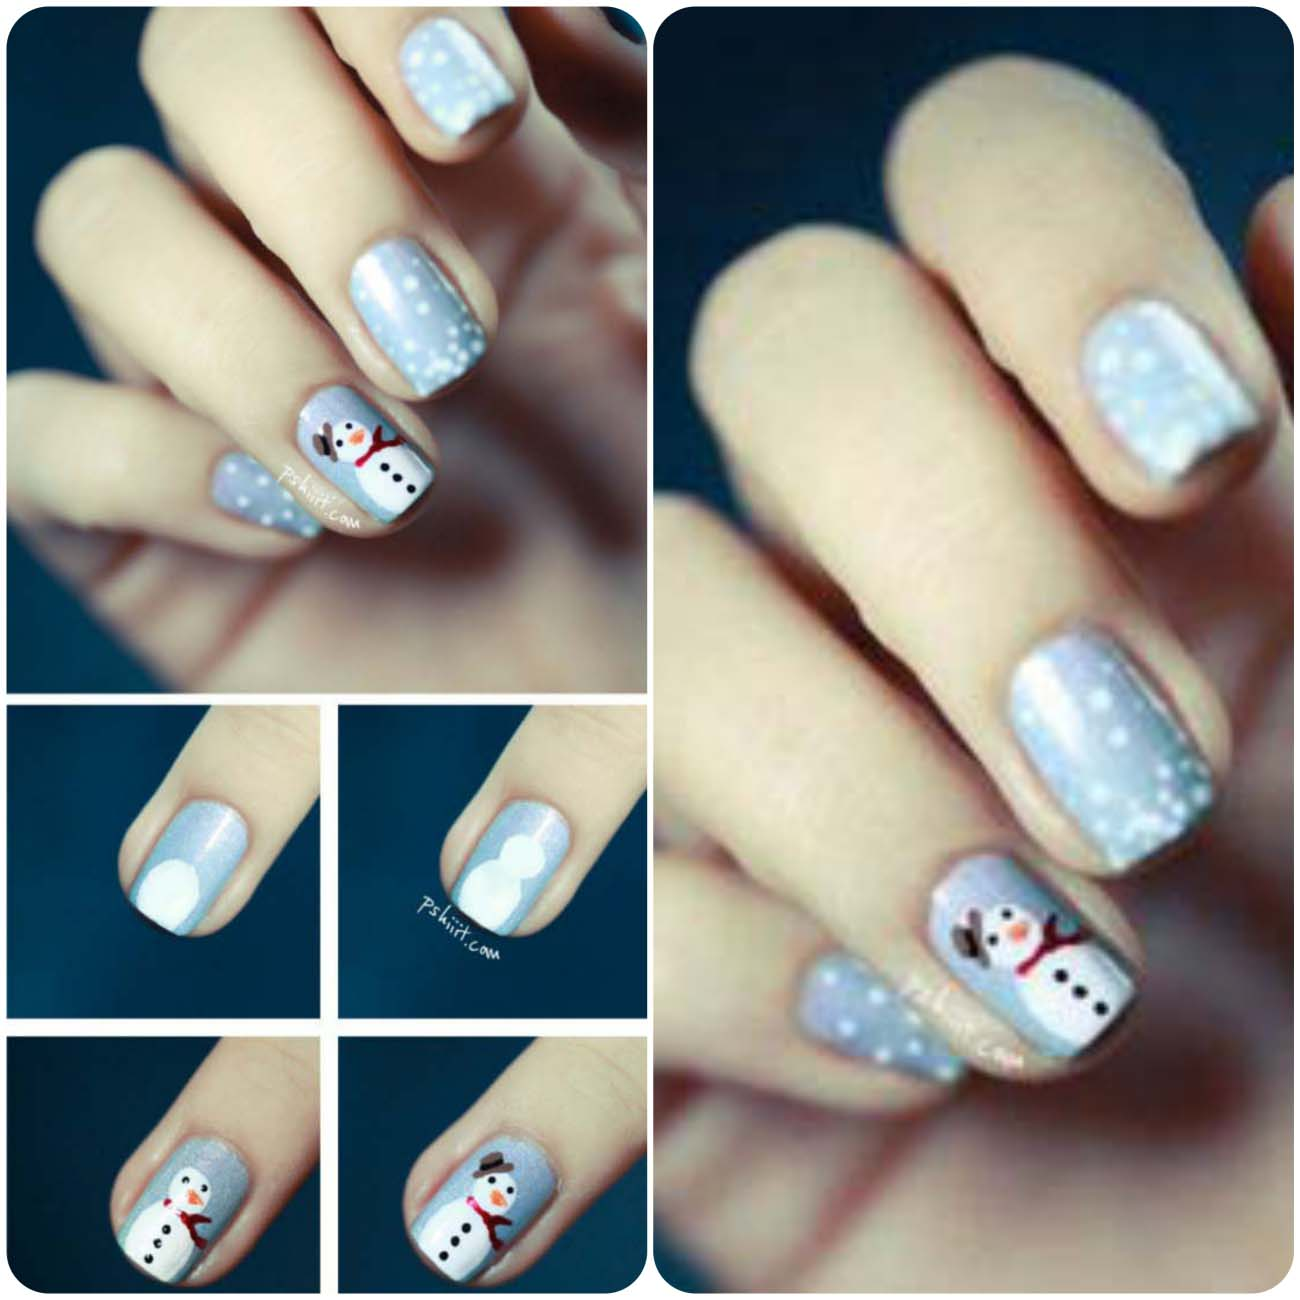 Charistmas Winter Nail art designs (11)_Fotor_Collage